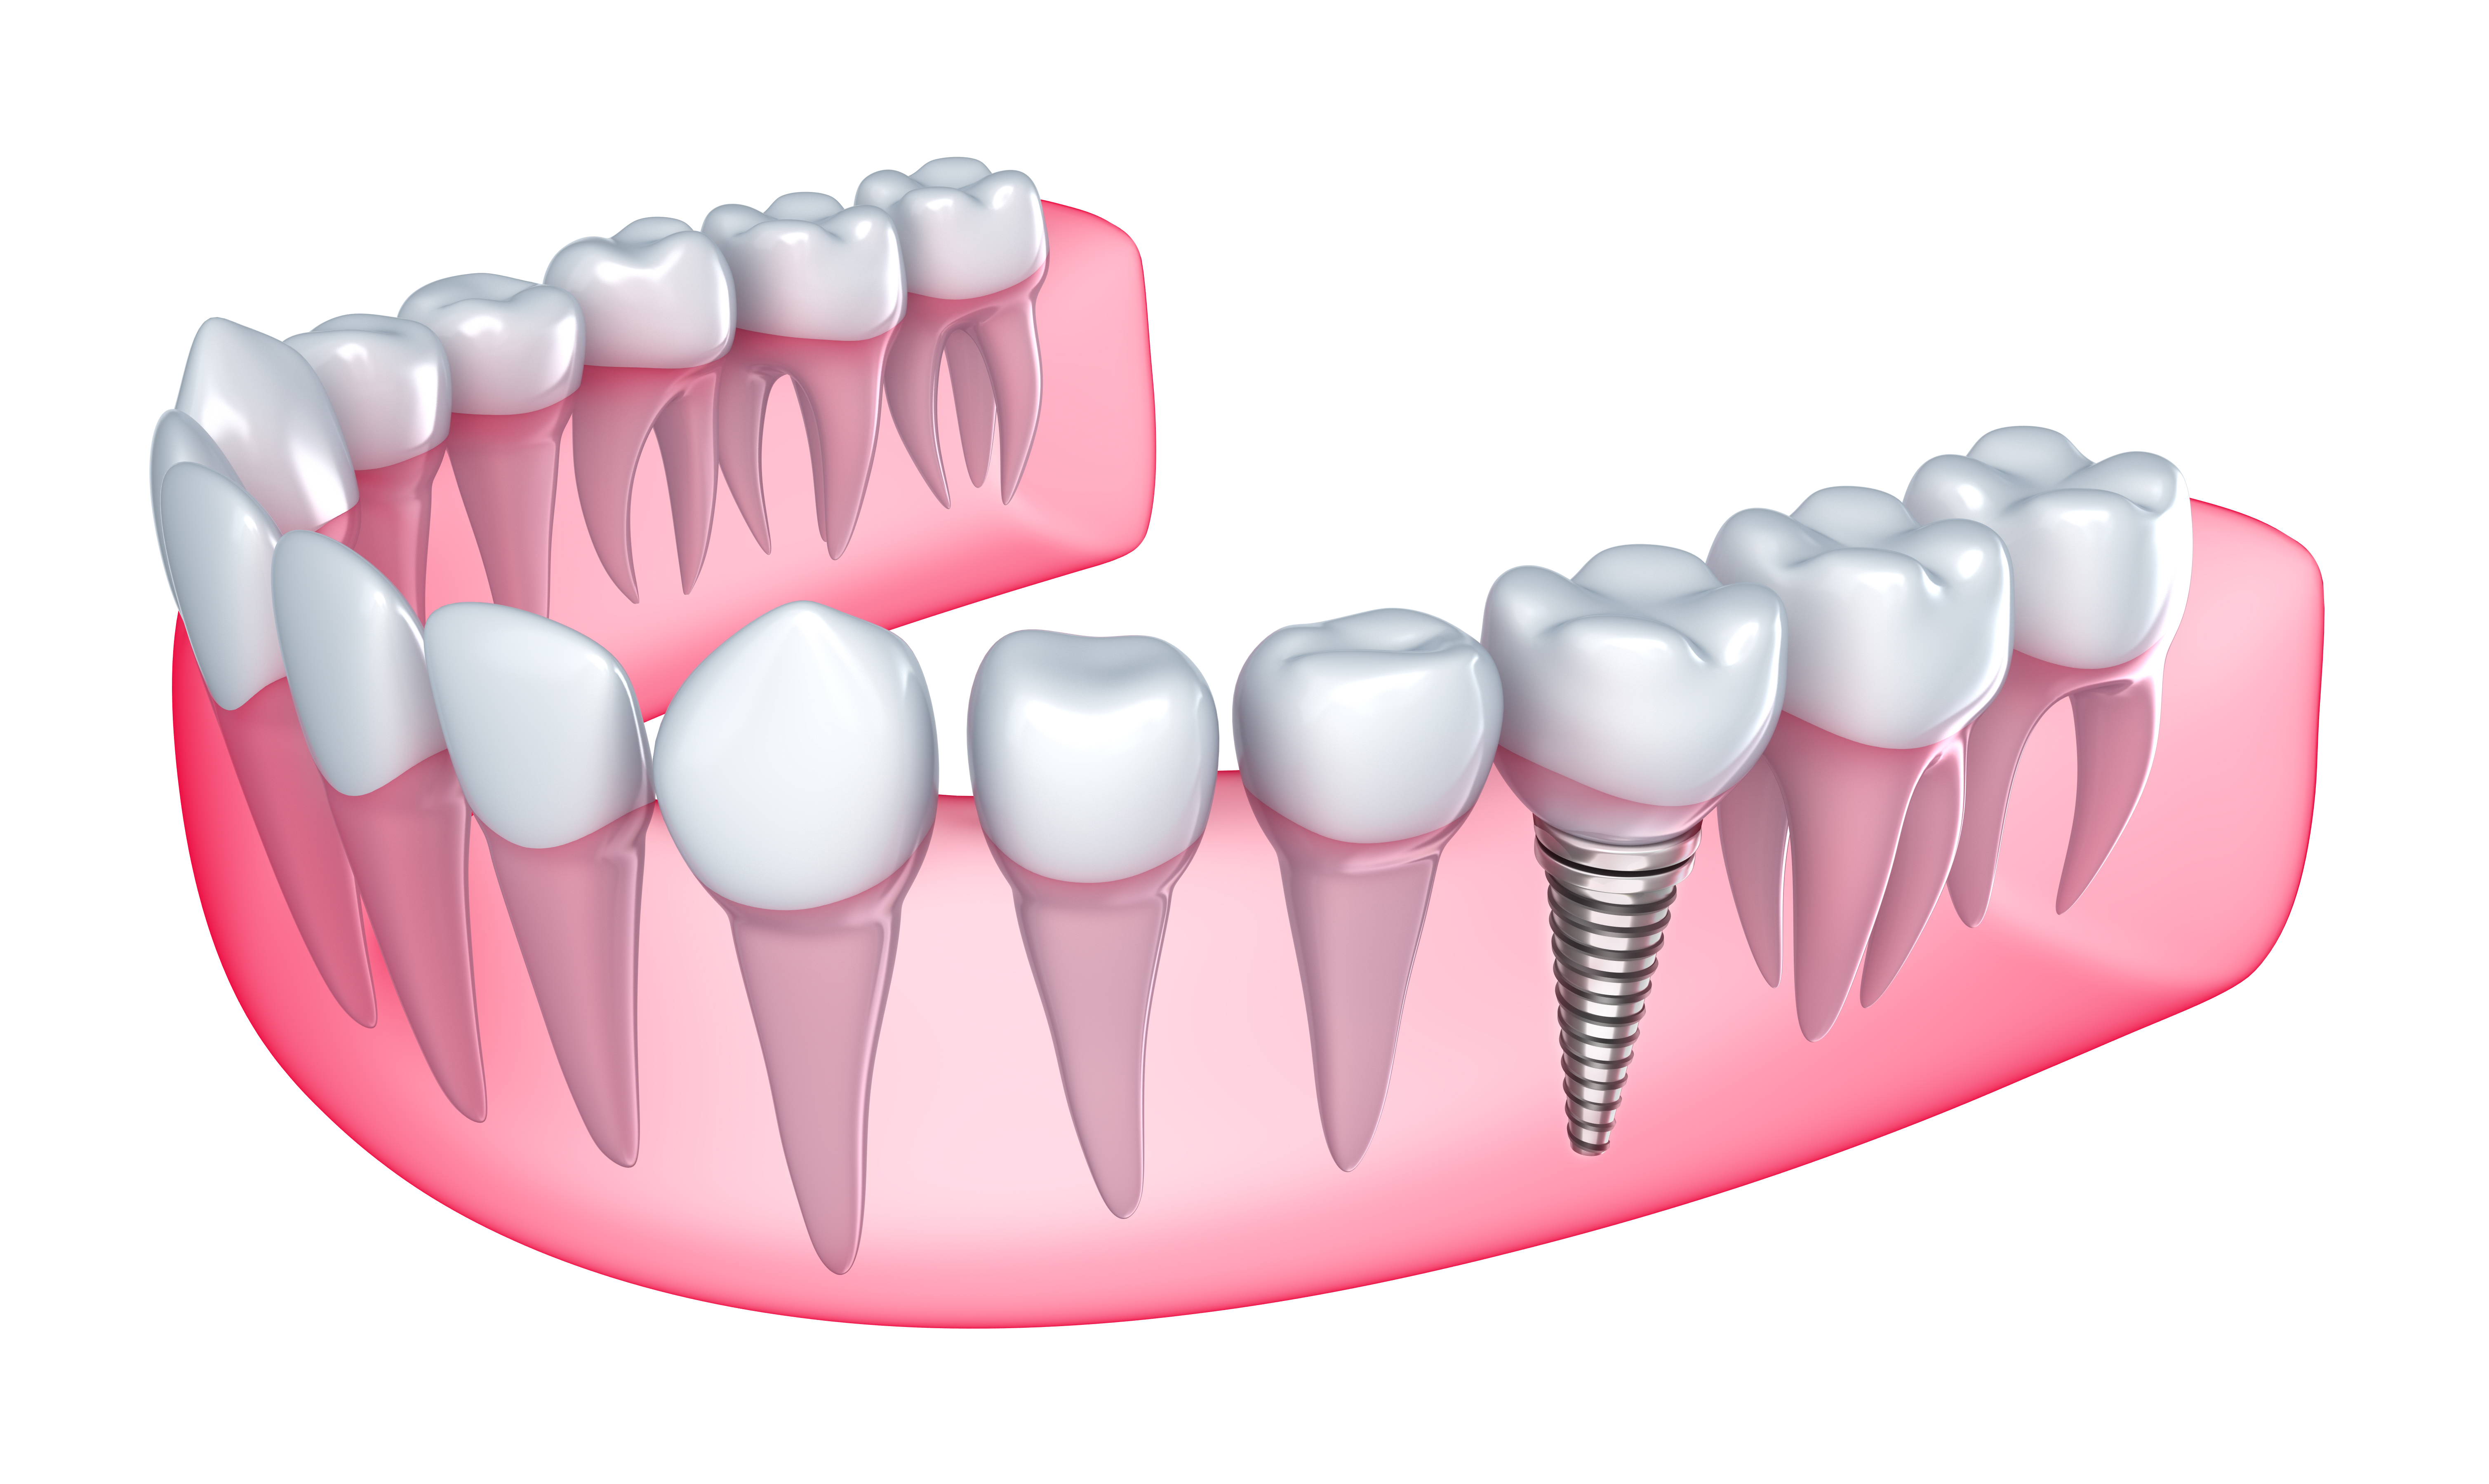 Where can I find Dental implants in Tamiami ?